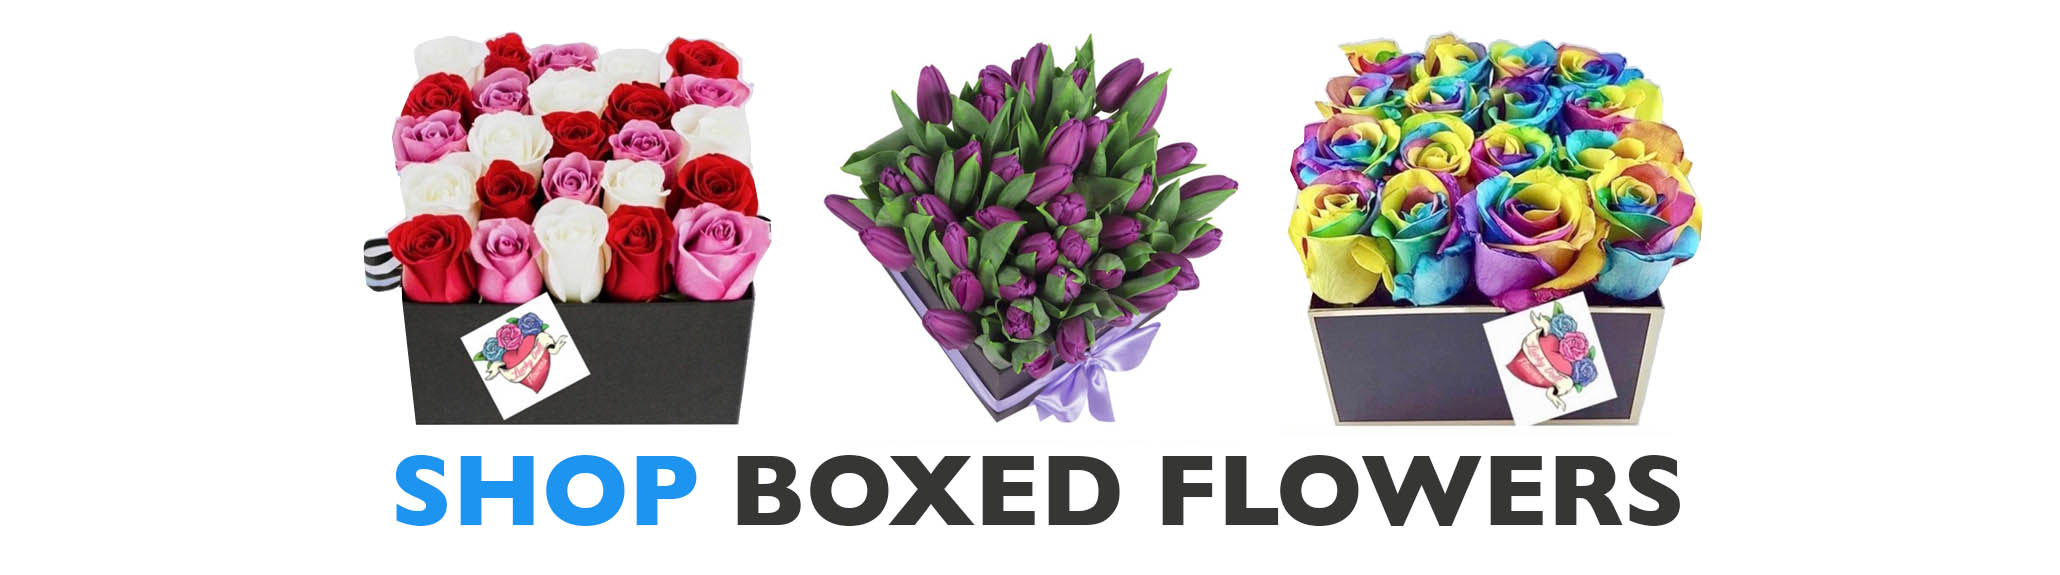 shopboxedflowers-78870.jpg